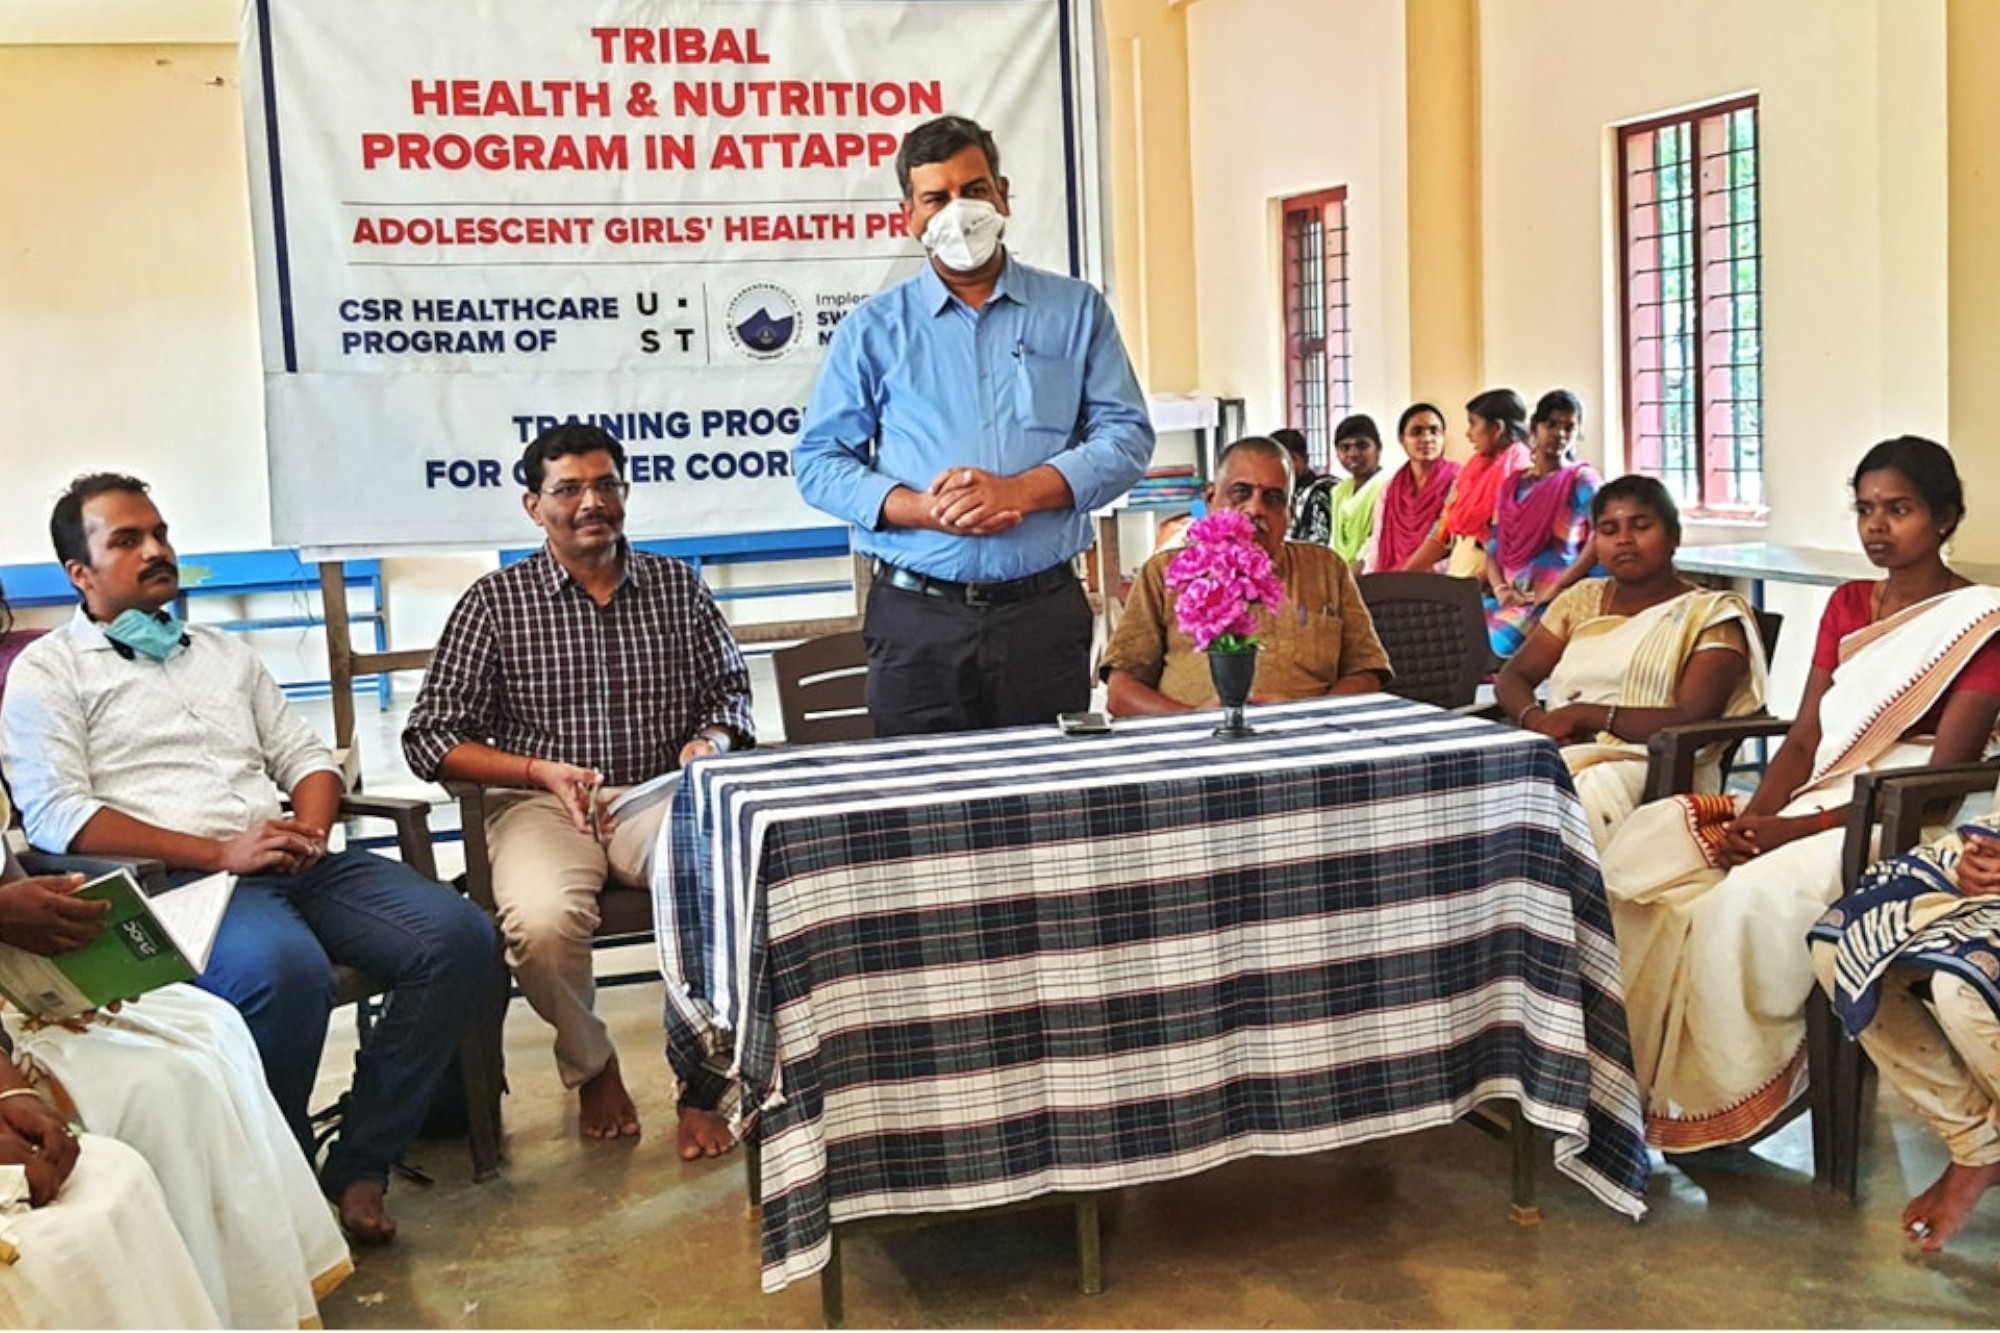 Adolescent Girls' Health Project